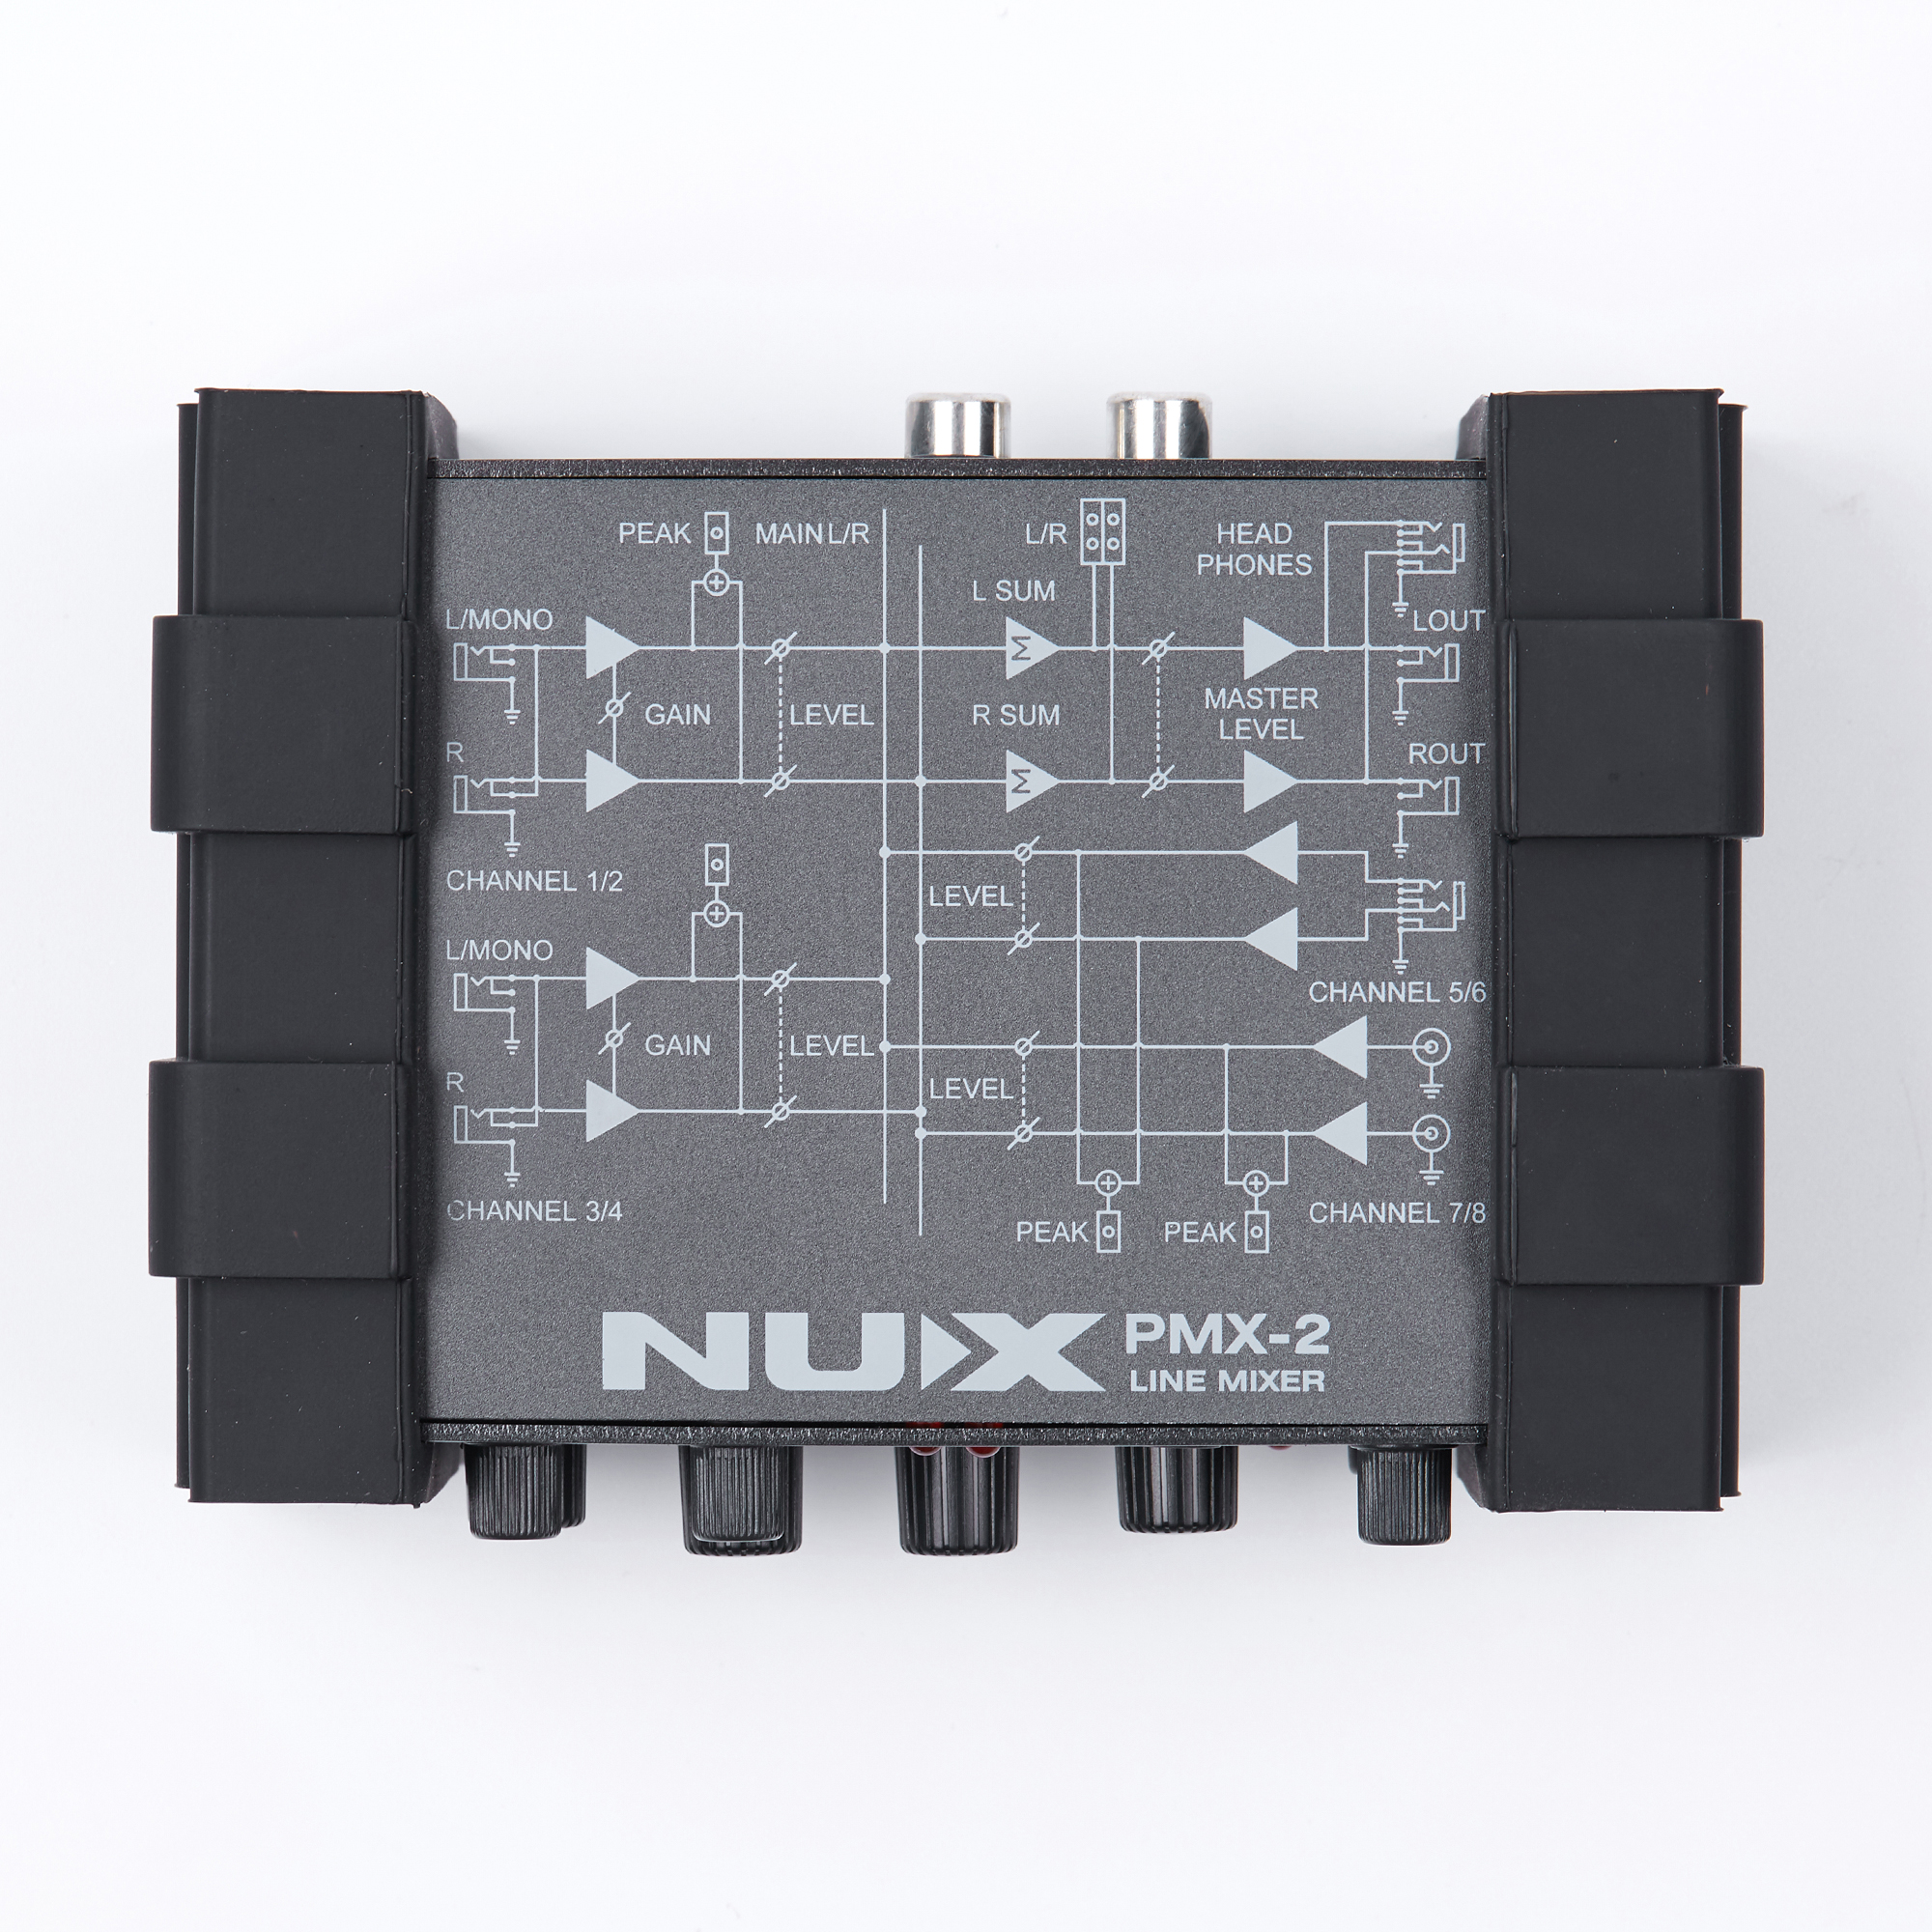 Gain Control 8 Inputs and 2 Outputs NUX PMX-2 Multi-Channel Mini Mixer 30 Musical Instruments Accessories for Guitar Bass Player sun 2015 june4